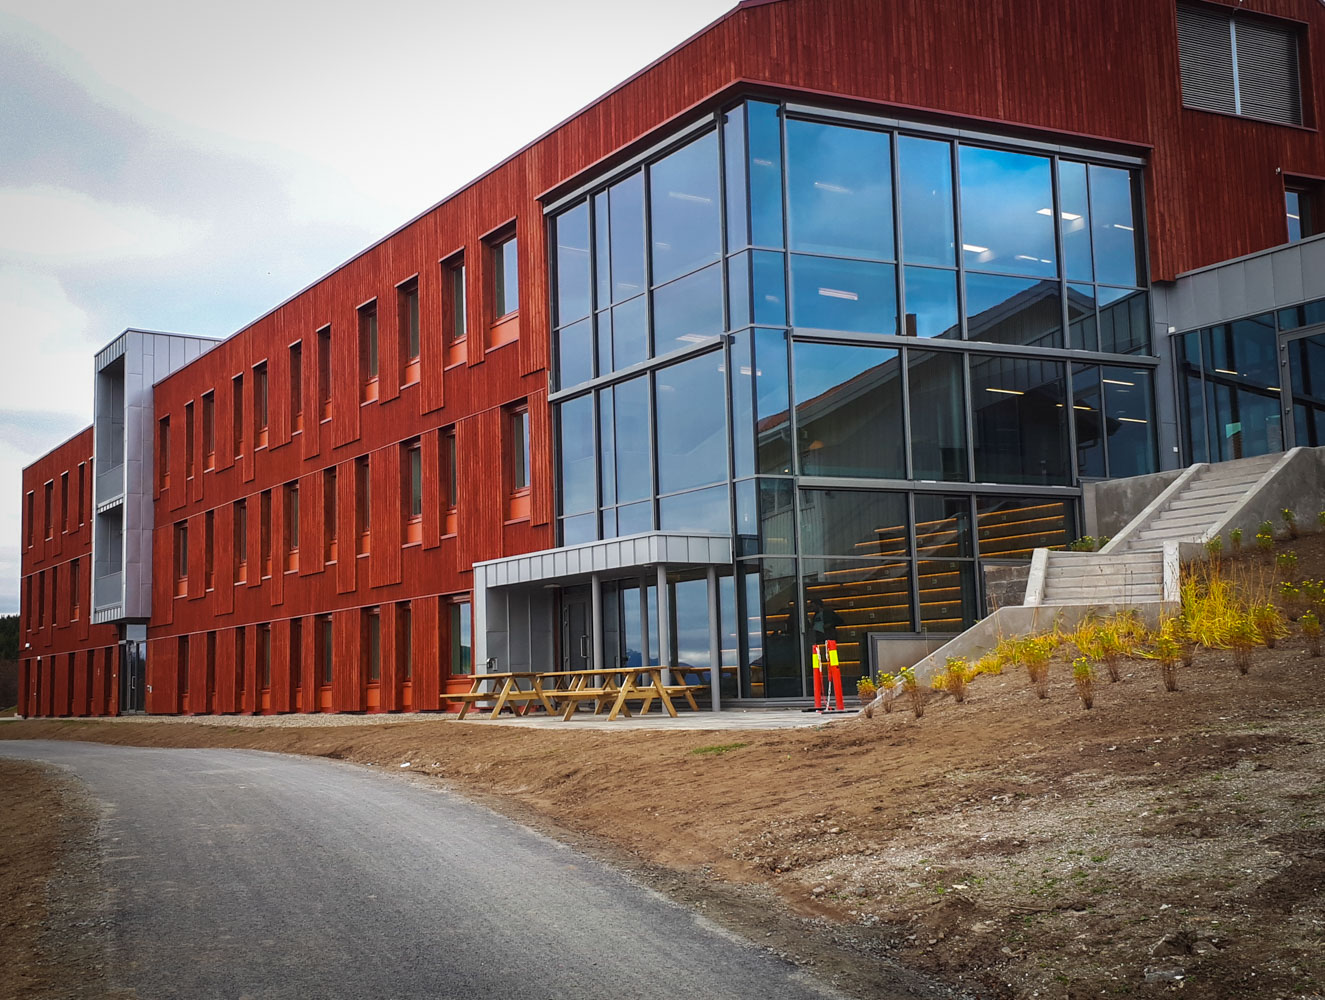 The new Biology building at, UiT, the Arctic University of Norway. JONAA©Harald Grape, UiT.